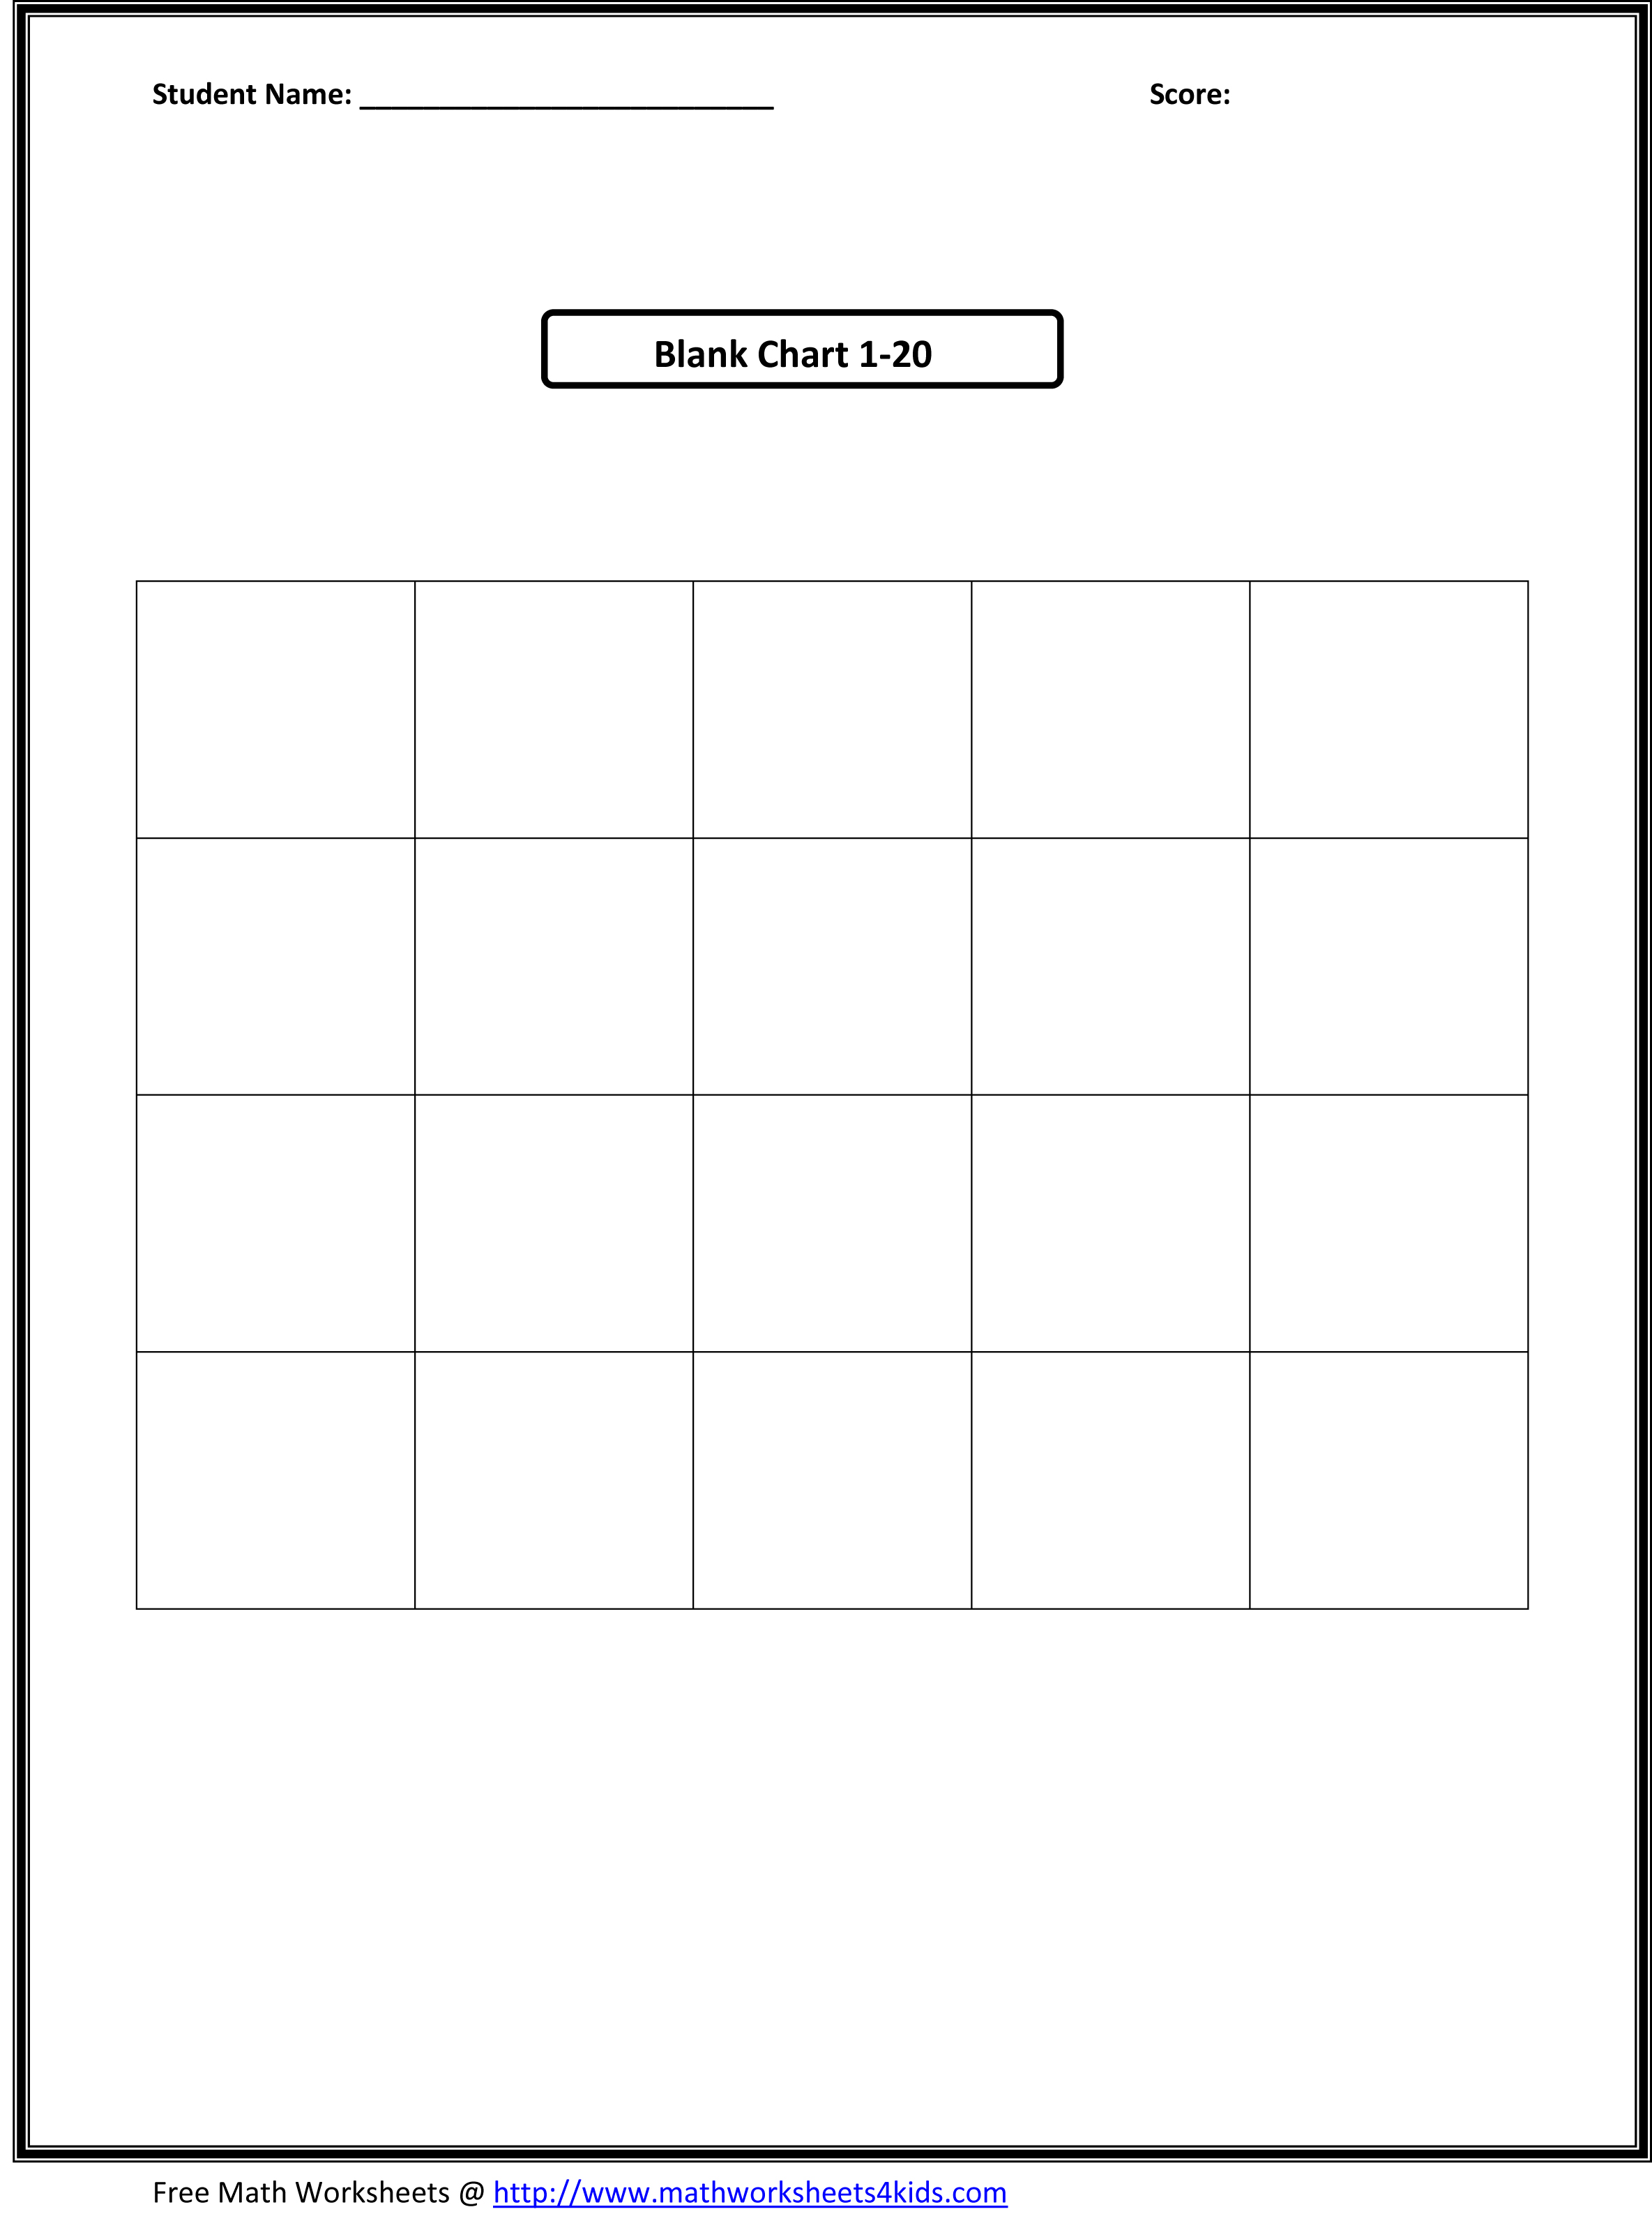 Free Number Line Template Vosvetenet – Blank Math Worksheets